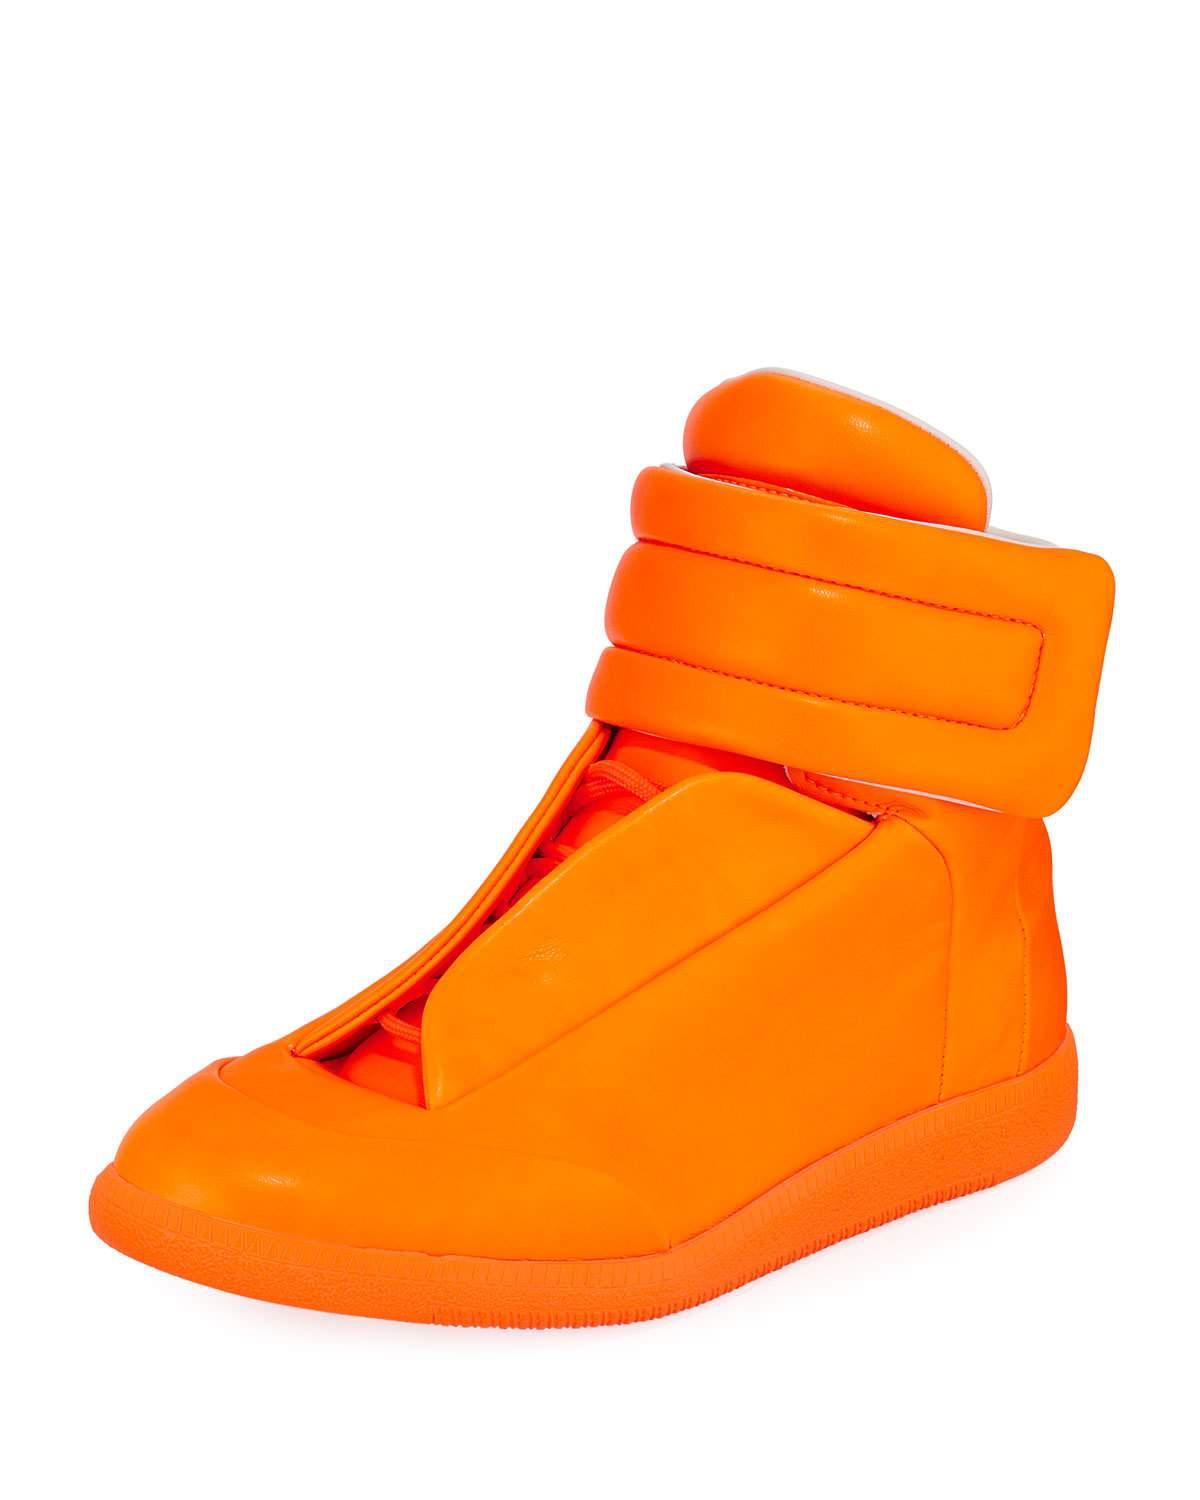 Shop Offer For Sale suede trim sneakers - Yellow & Orange Maison Martin Margiela Free Shipping Best Sale 0JKfk